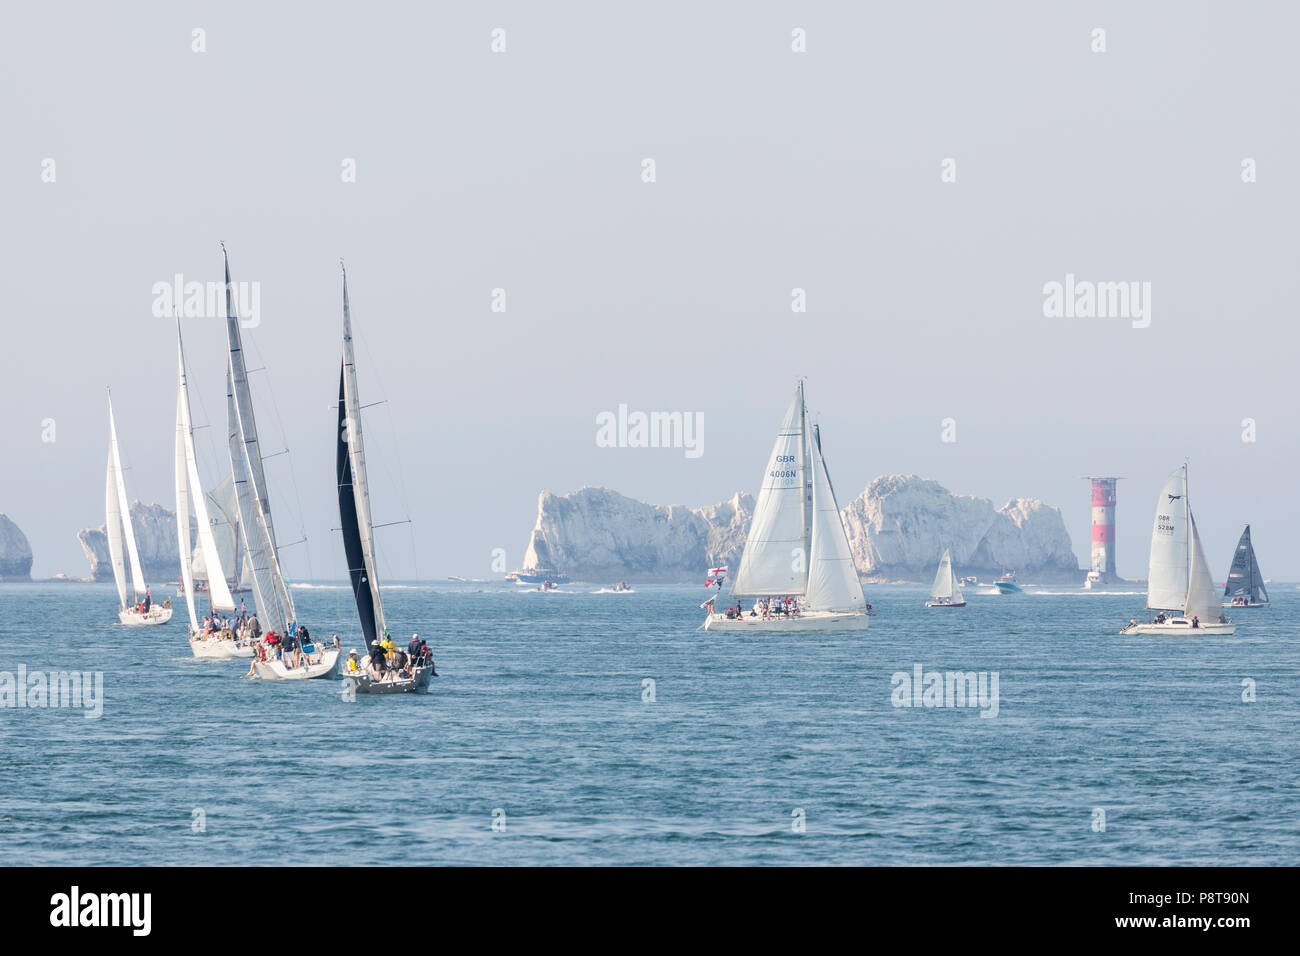 Jib and Tonic,GBR 4006N,GBR 528M, GBR 3027, 1029, - Stock Image